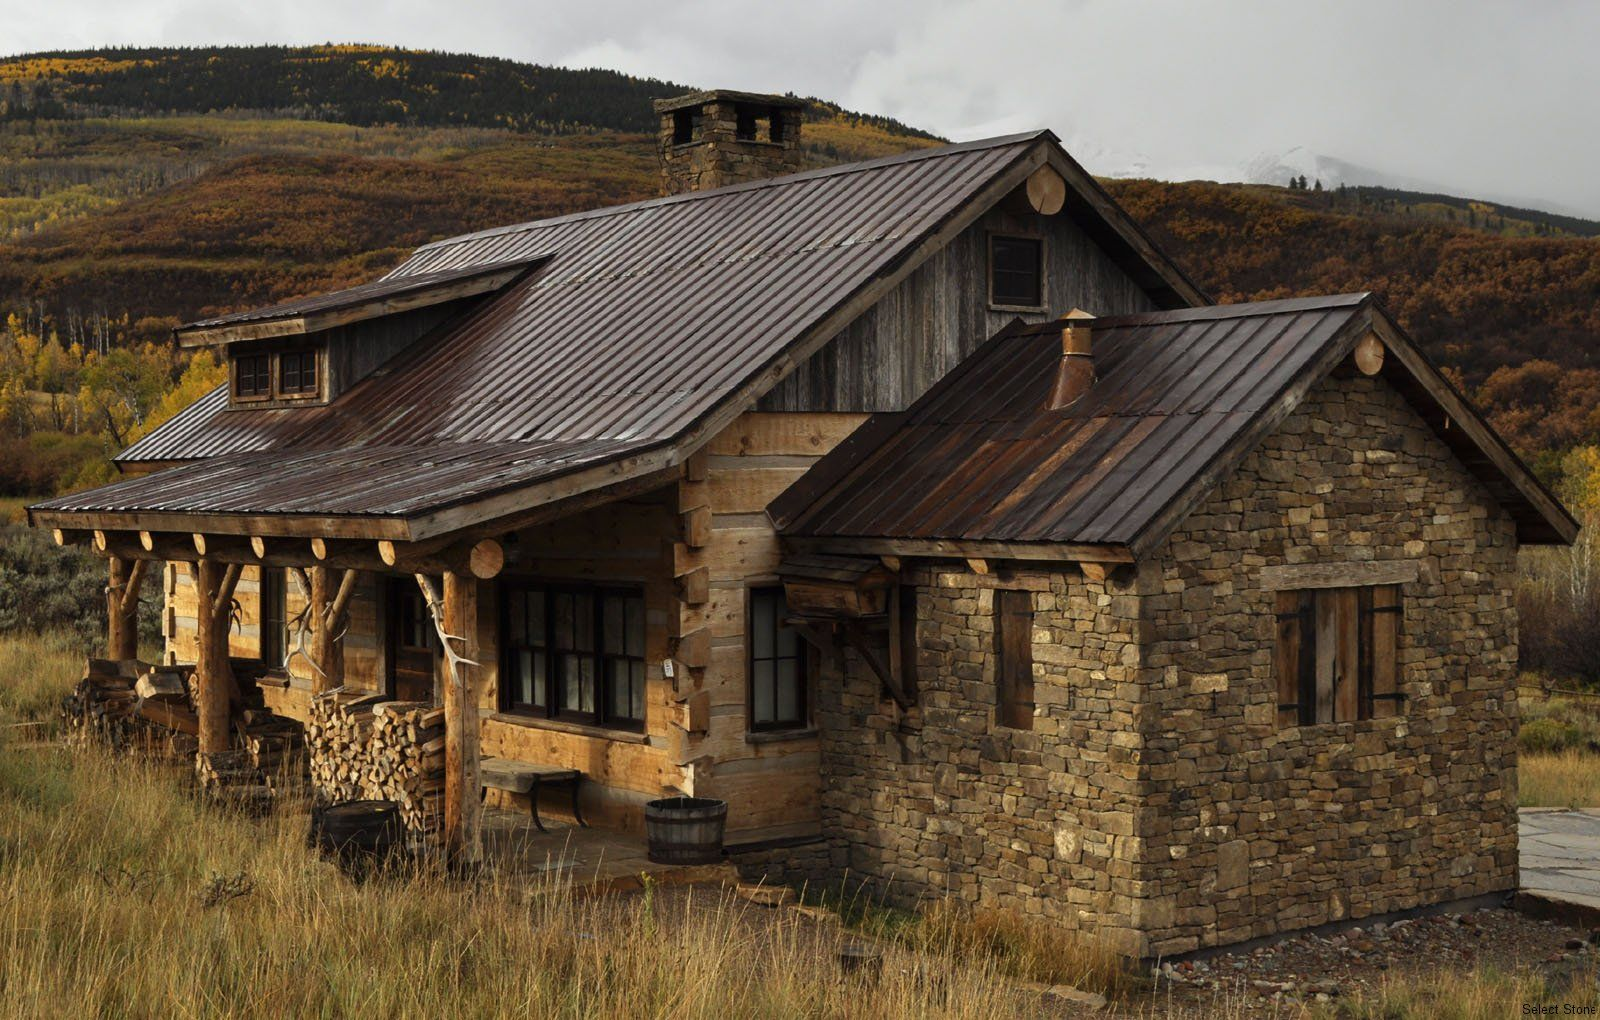 Rustic montana home cabins pinterest montana and cabin for Cabin builders montana